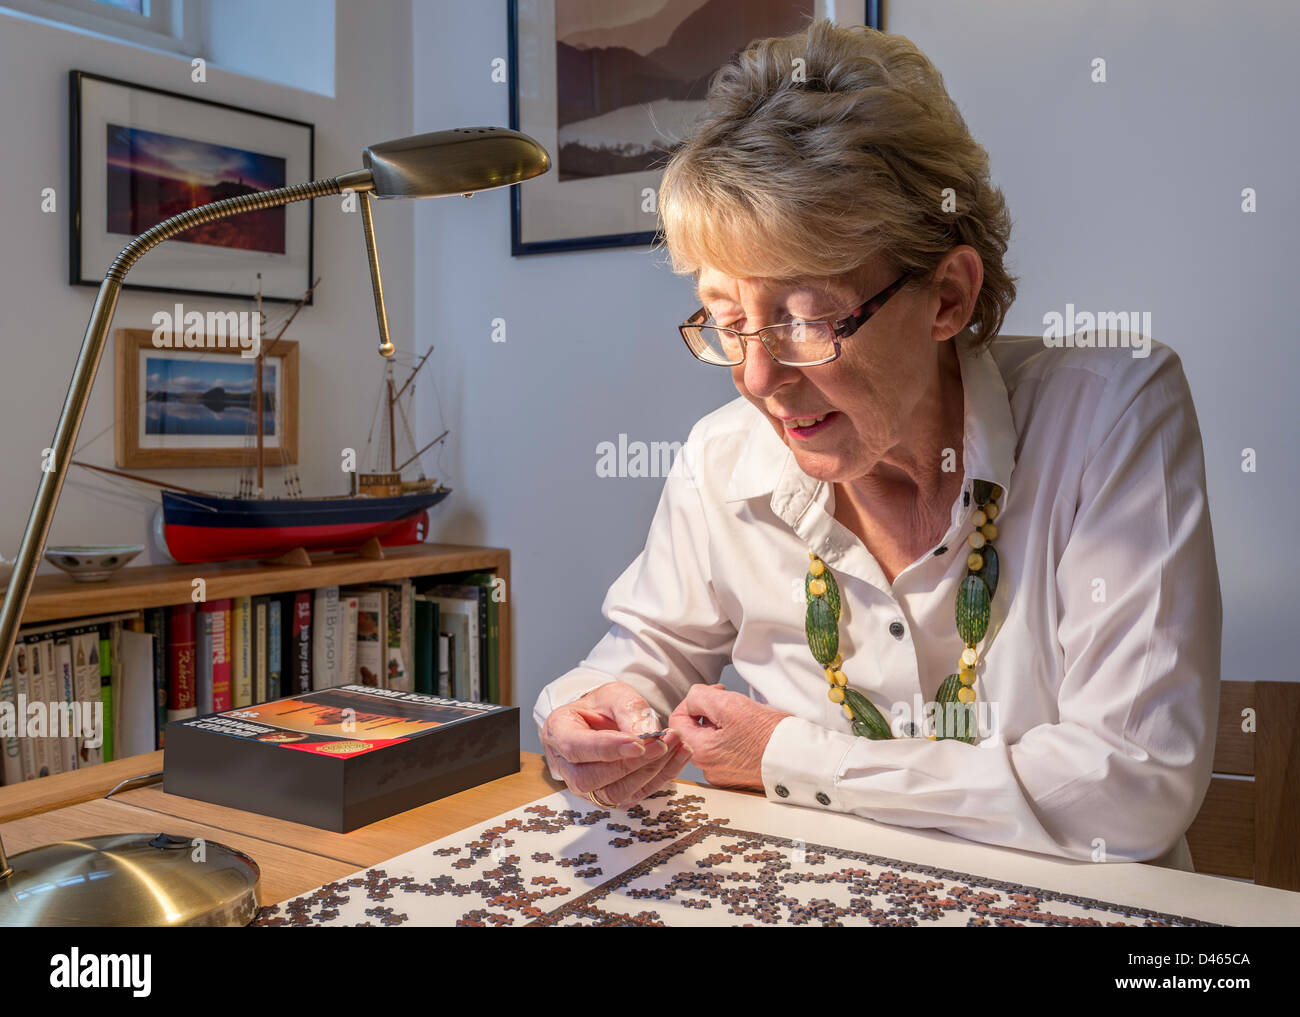 Elderly woman, OAP with jigsaw at home UK - Stock Image